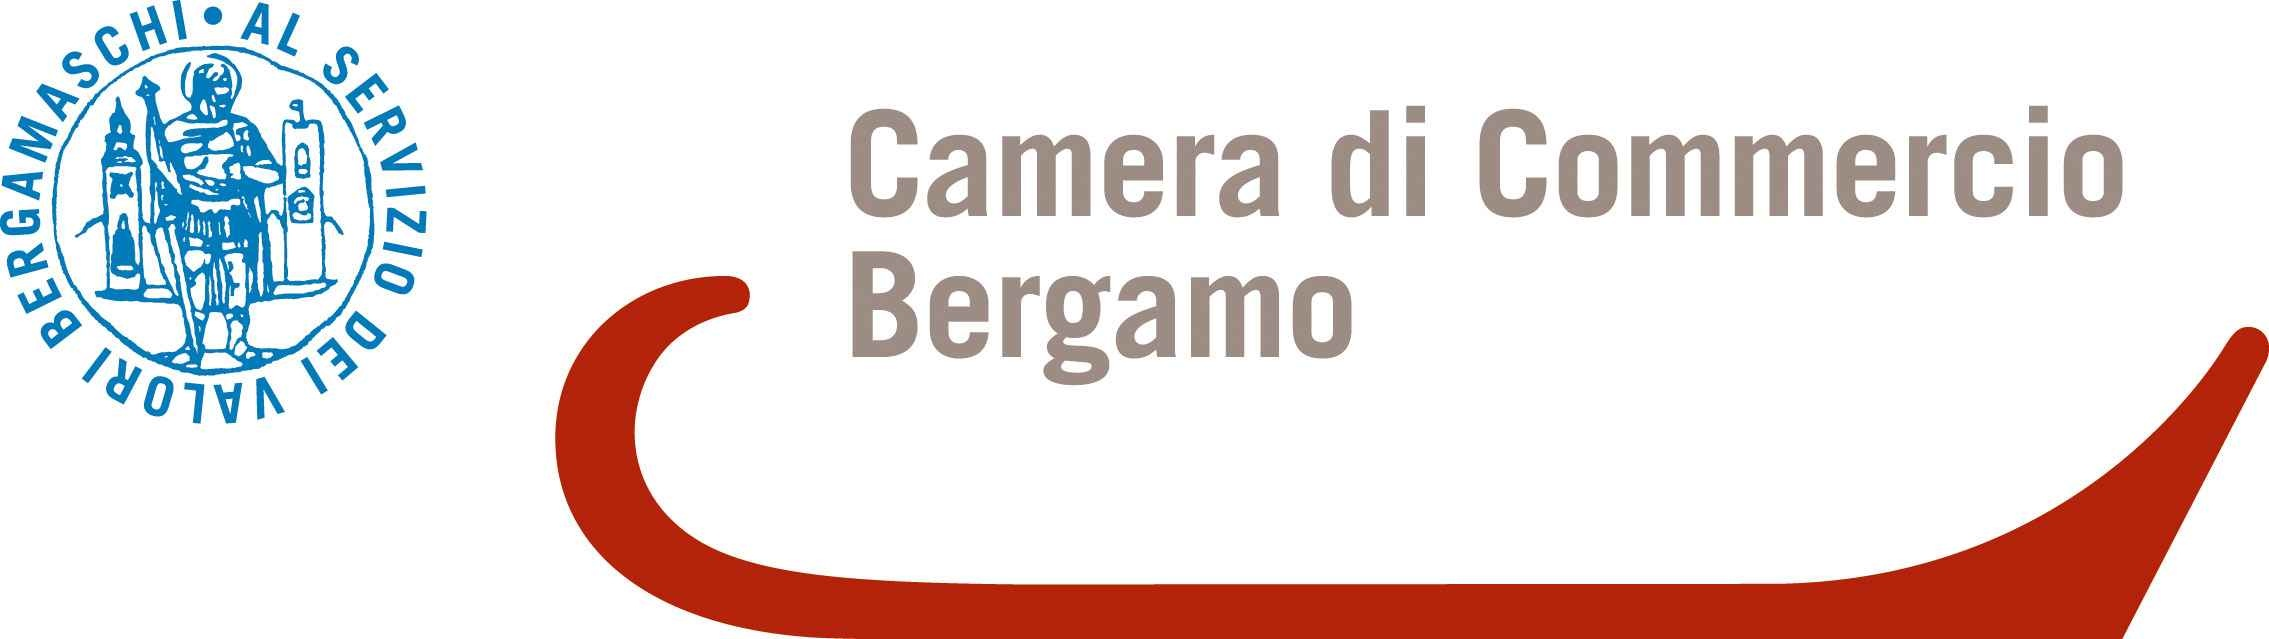 camera commercio bergamo logo